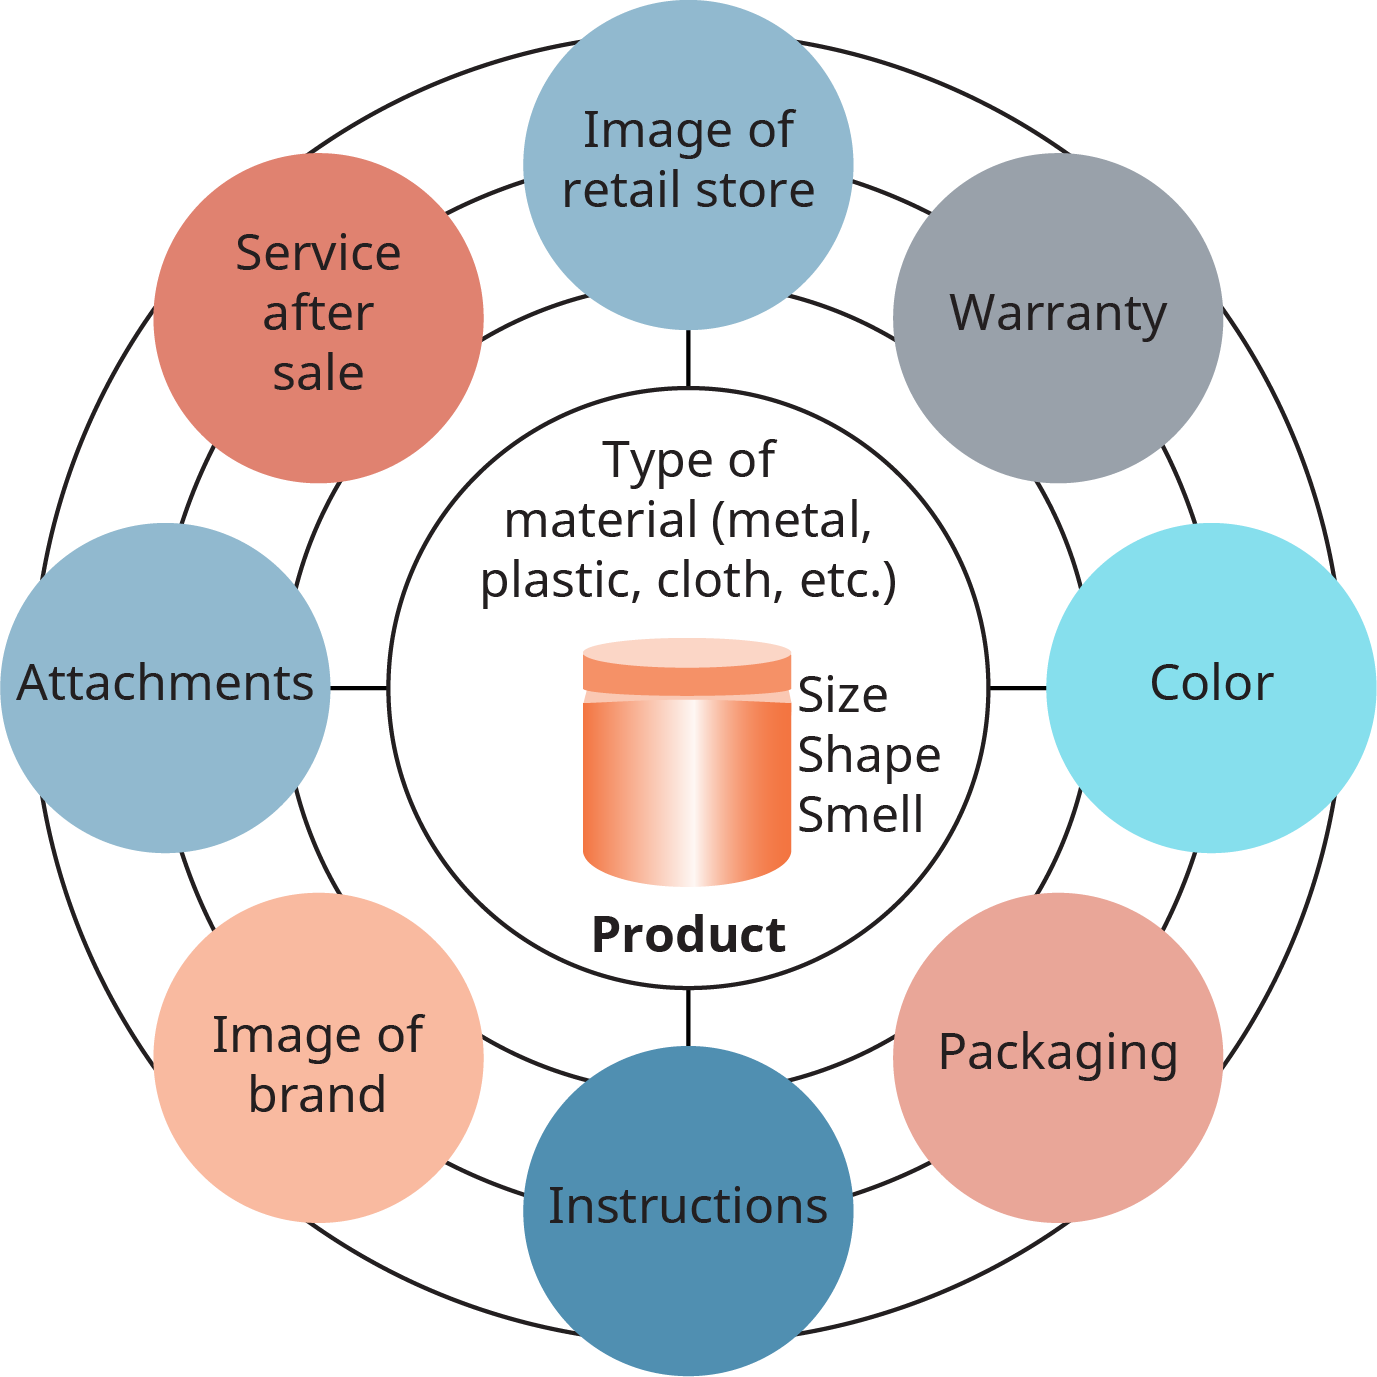 At the center of a circle is the product. Within the circle reads as follows. Type of material, metal, plastic, cloth; size, shape, smell. There are concentric circles surrounding the product, and there are orbs attached to the circles. These are labeled as follows. Image of retail store; warranty; color; packaging; instructions; image of brand; attachments; and service after sale.